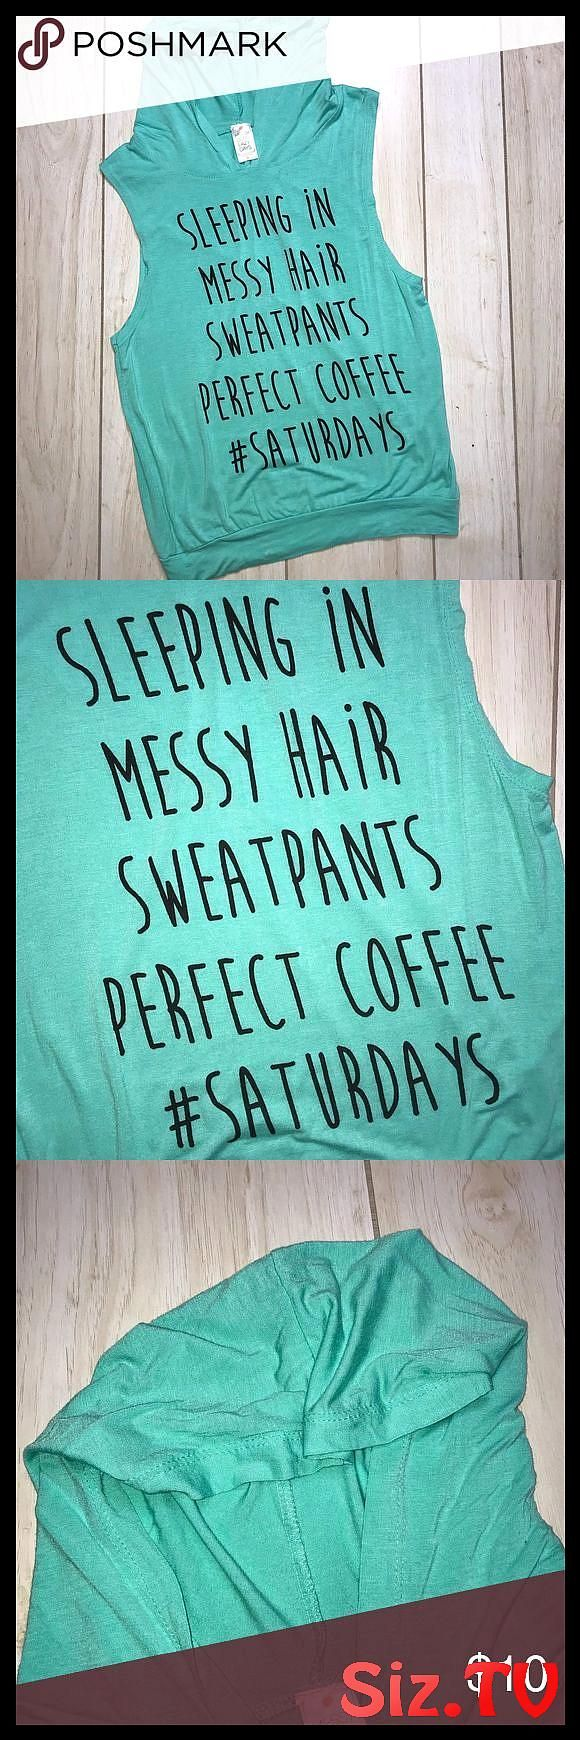 Messy Buns Lazy Days Blue Hooded Muscle Tank Soft Lightweight Tank Hooded Says Sleeping In Messy Hair Sweatpants Perfect Coffee Saturdays Messy Buns L...